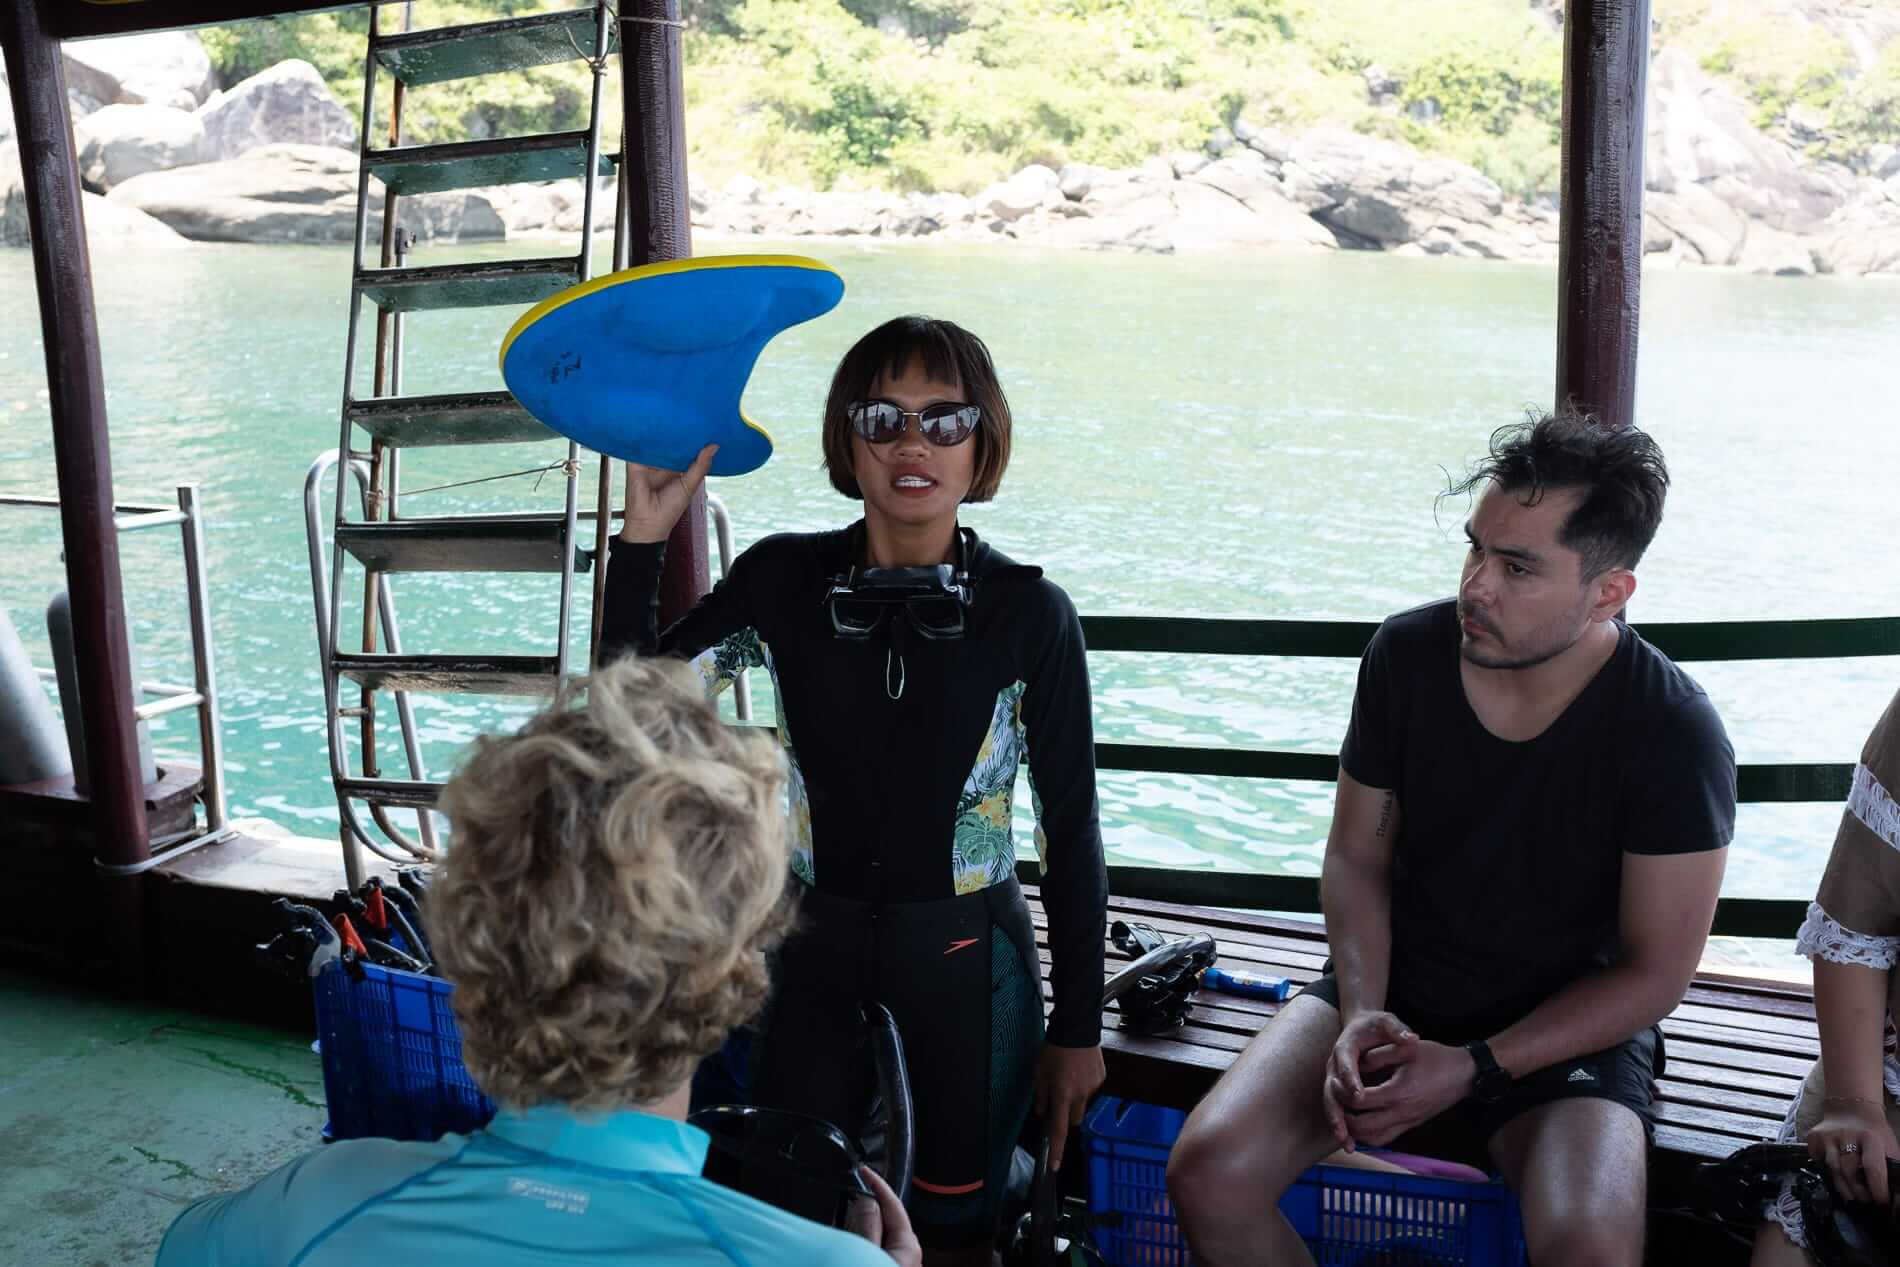 Snorkelling instructor gives pointers on safety